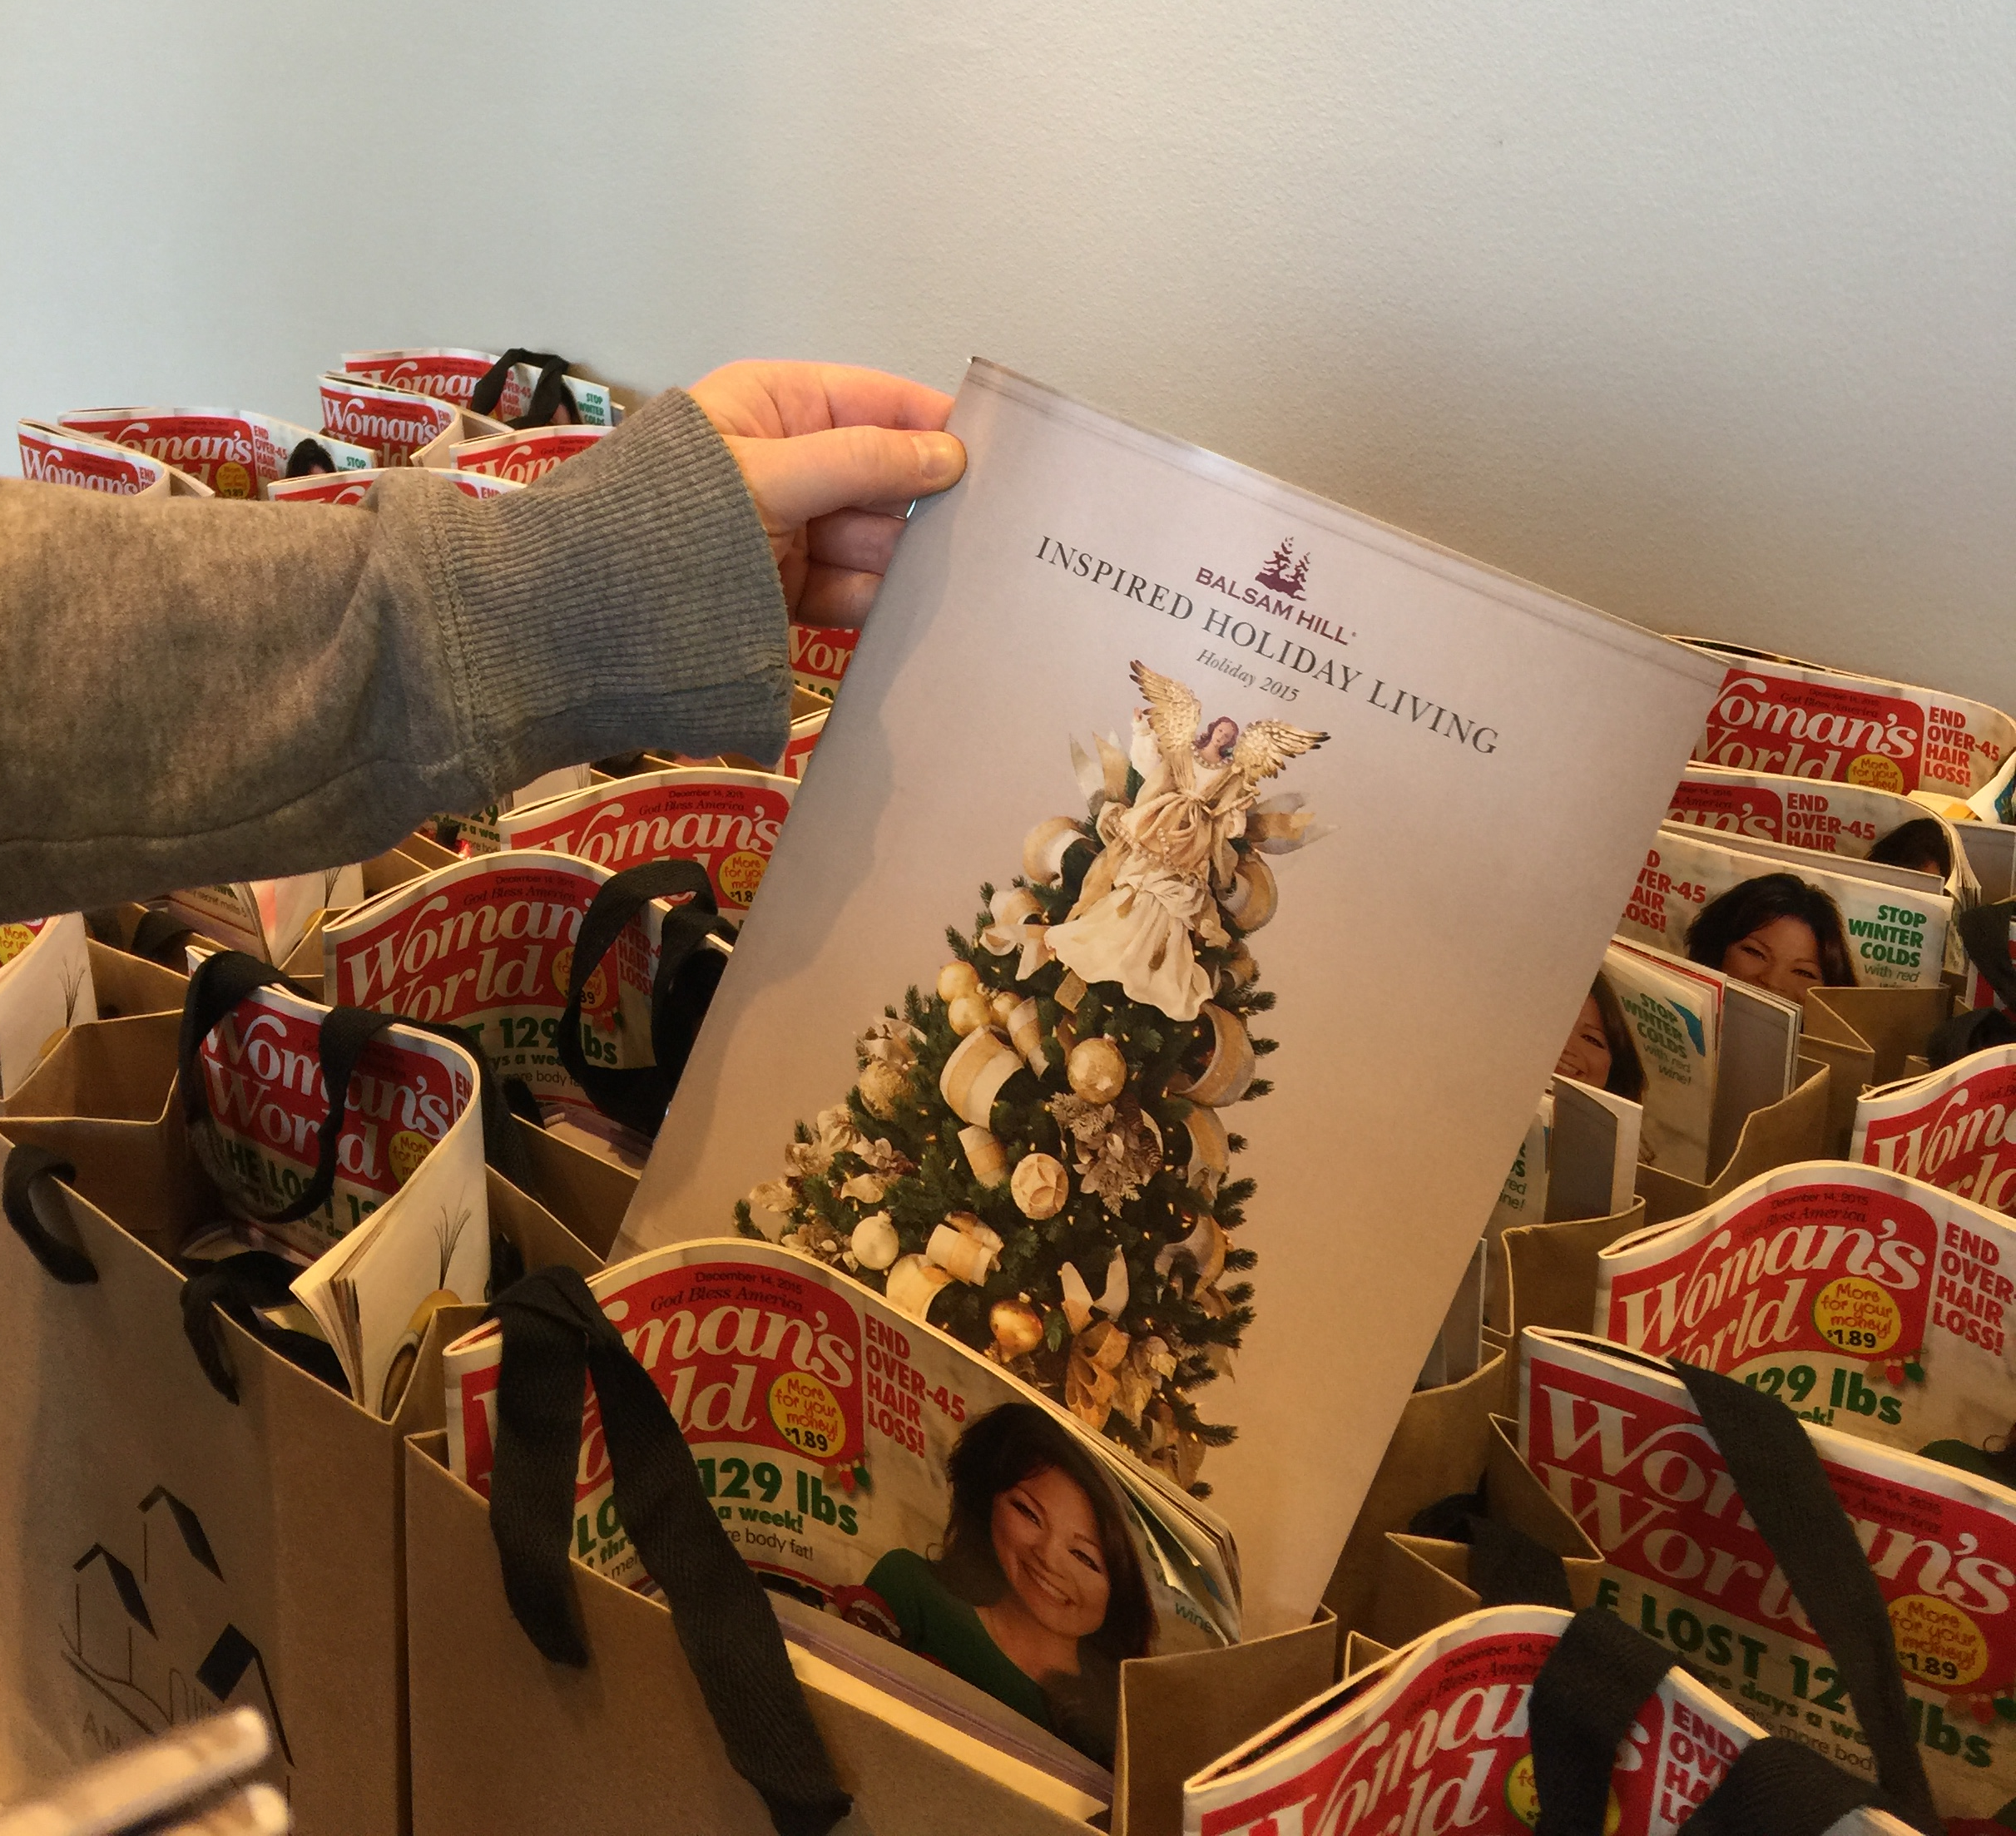 Random House's gift bags, with Balsam Hill's 2015 Holiday Catalogue